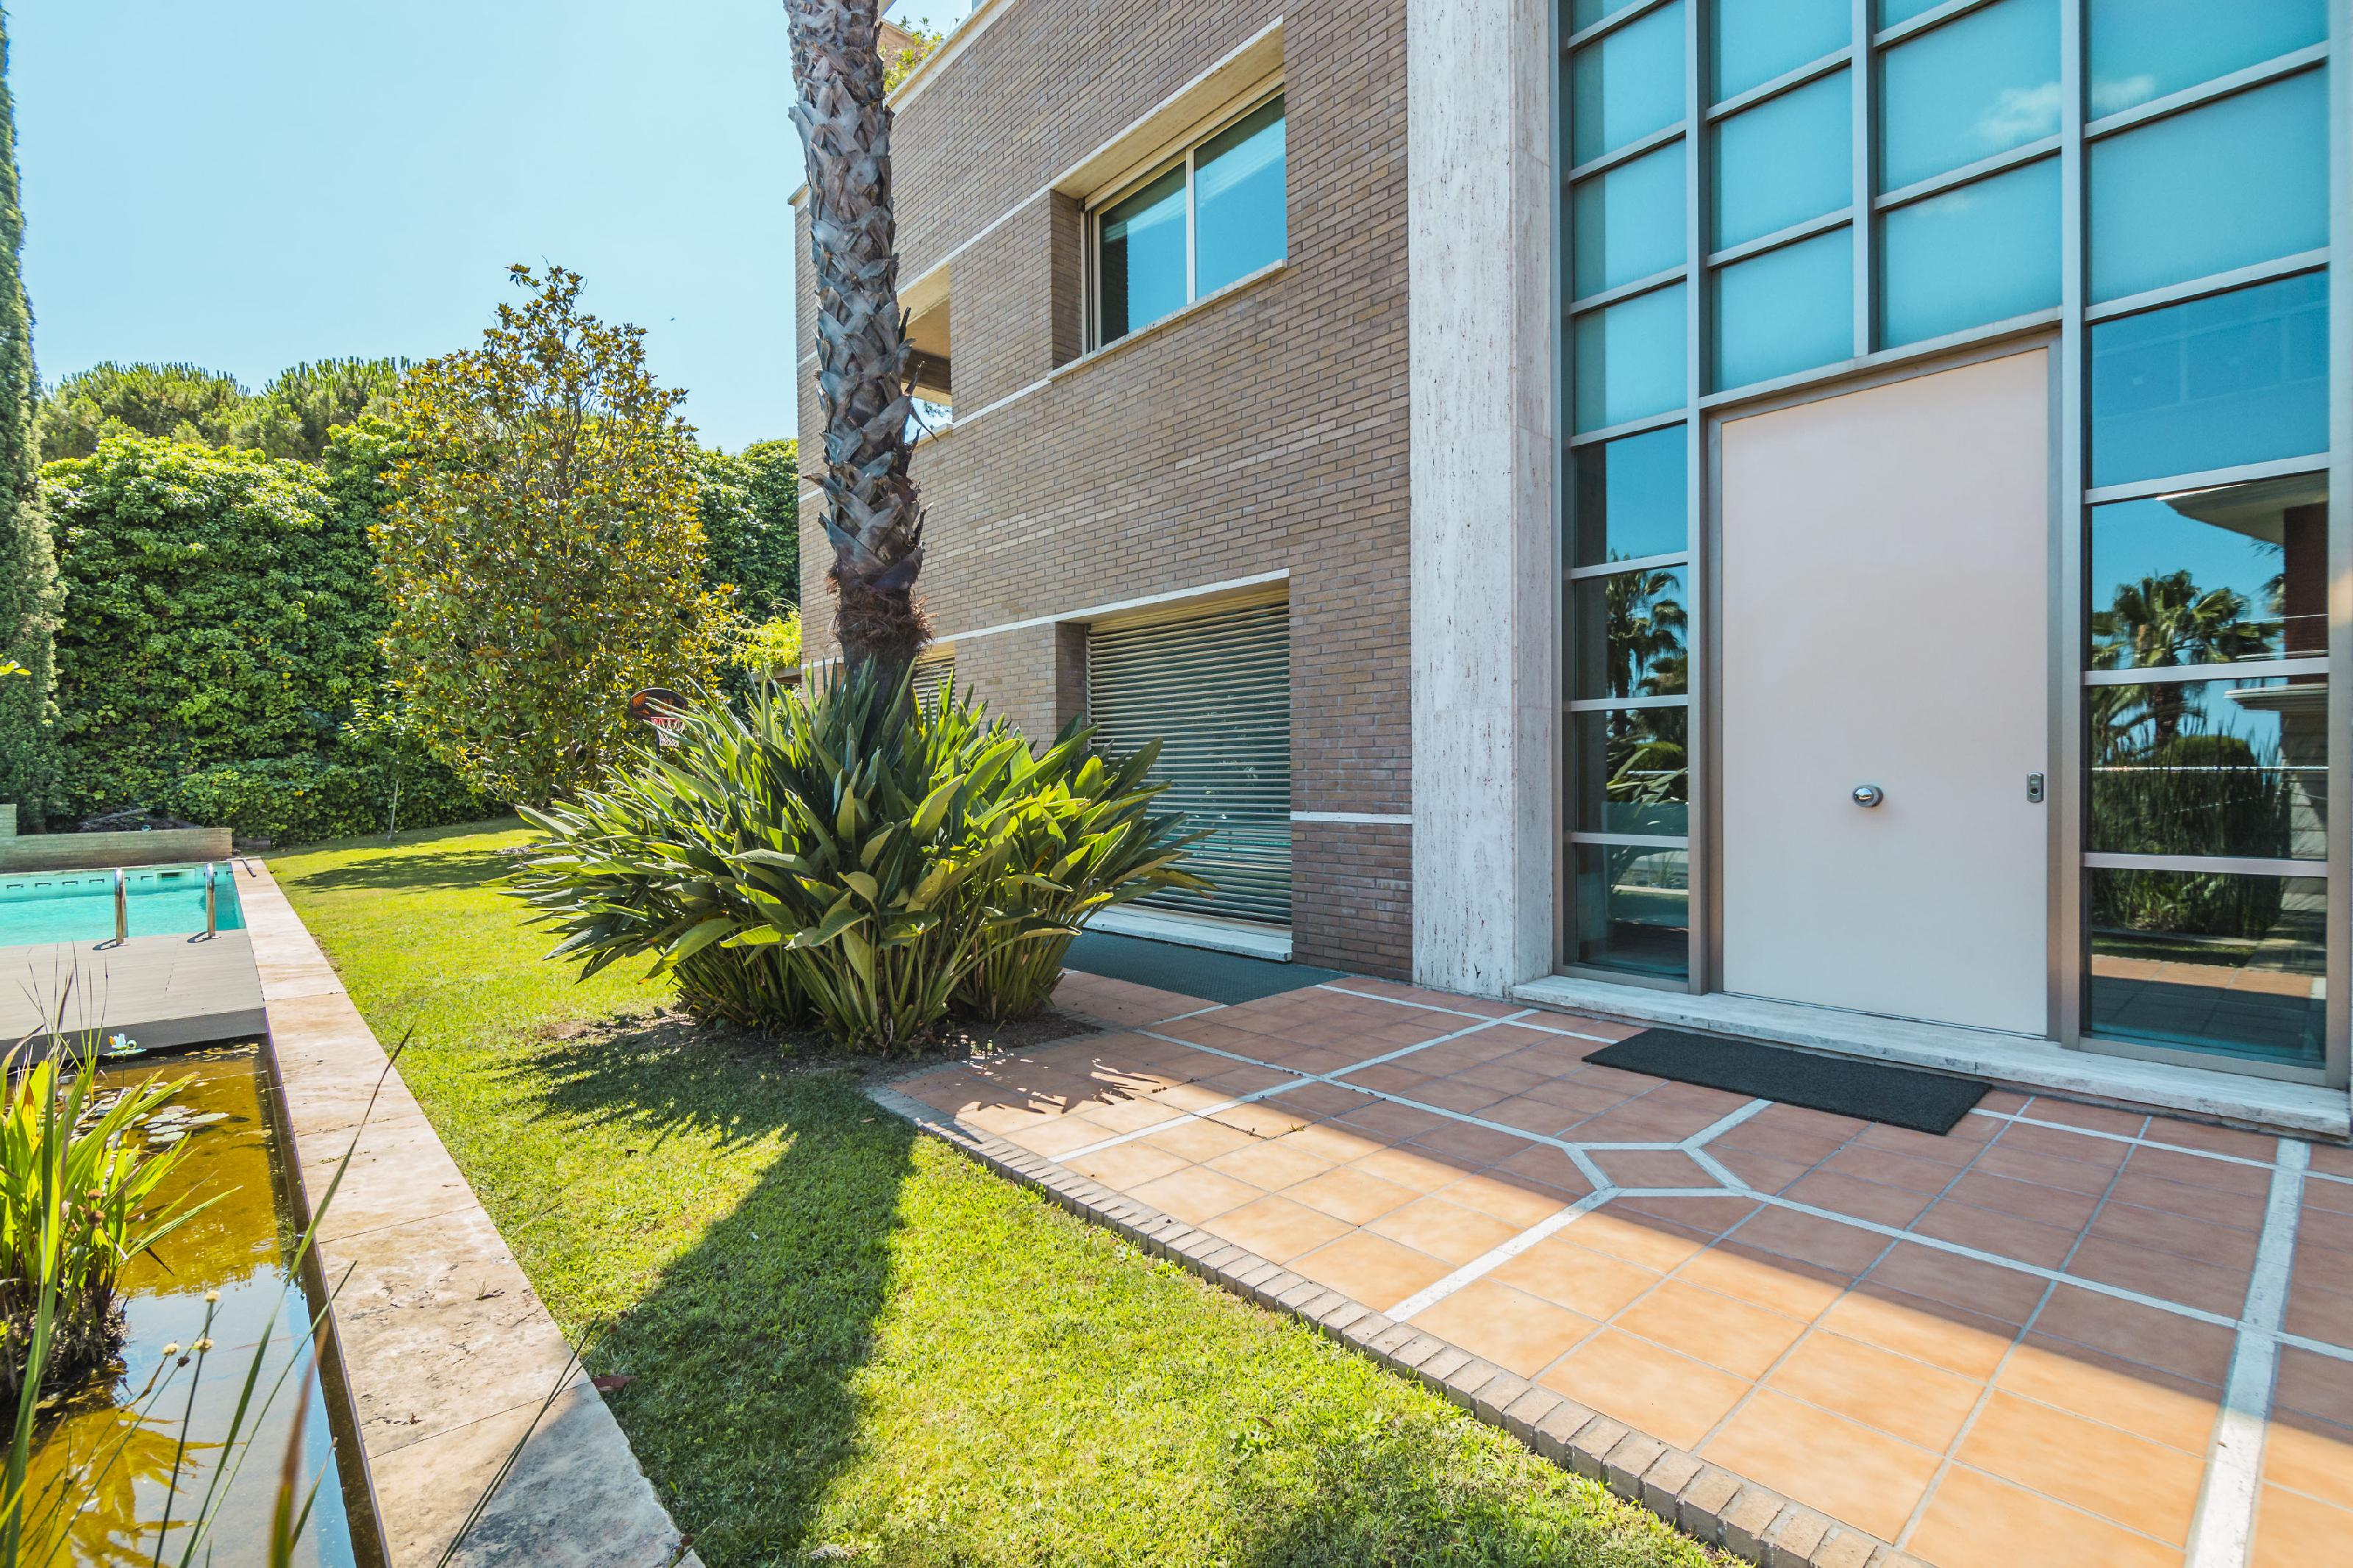 226231 House for sale in Les Corts, Pedralbes 34